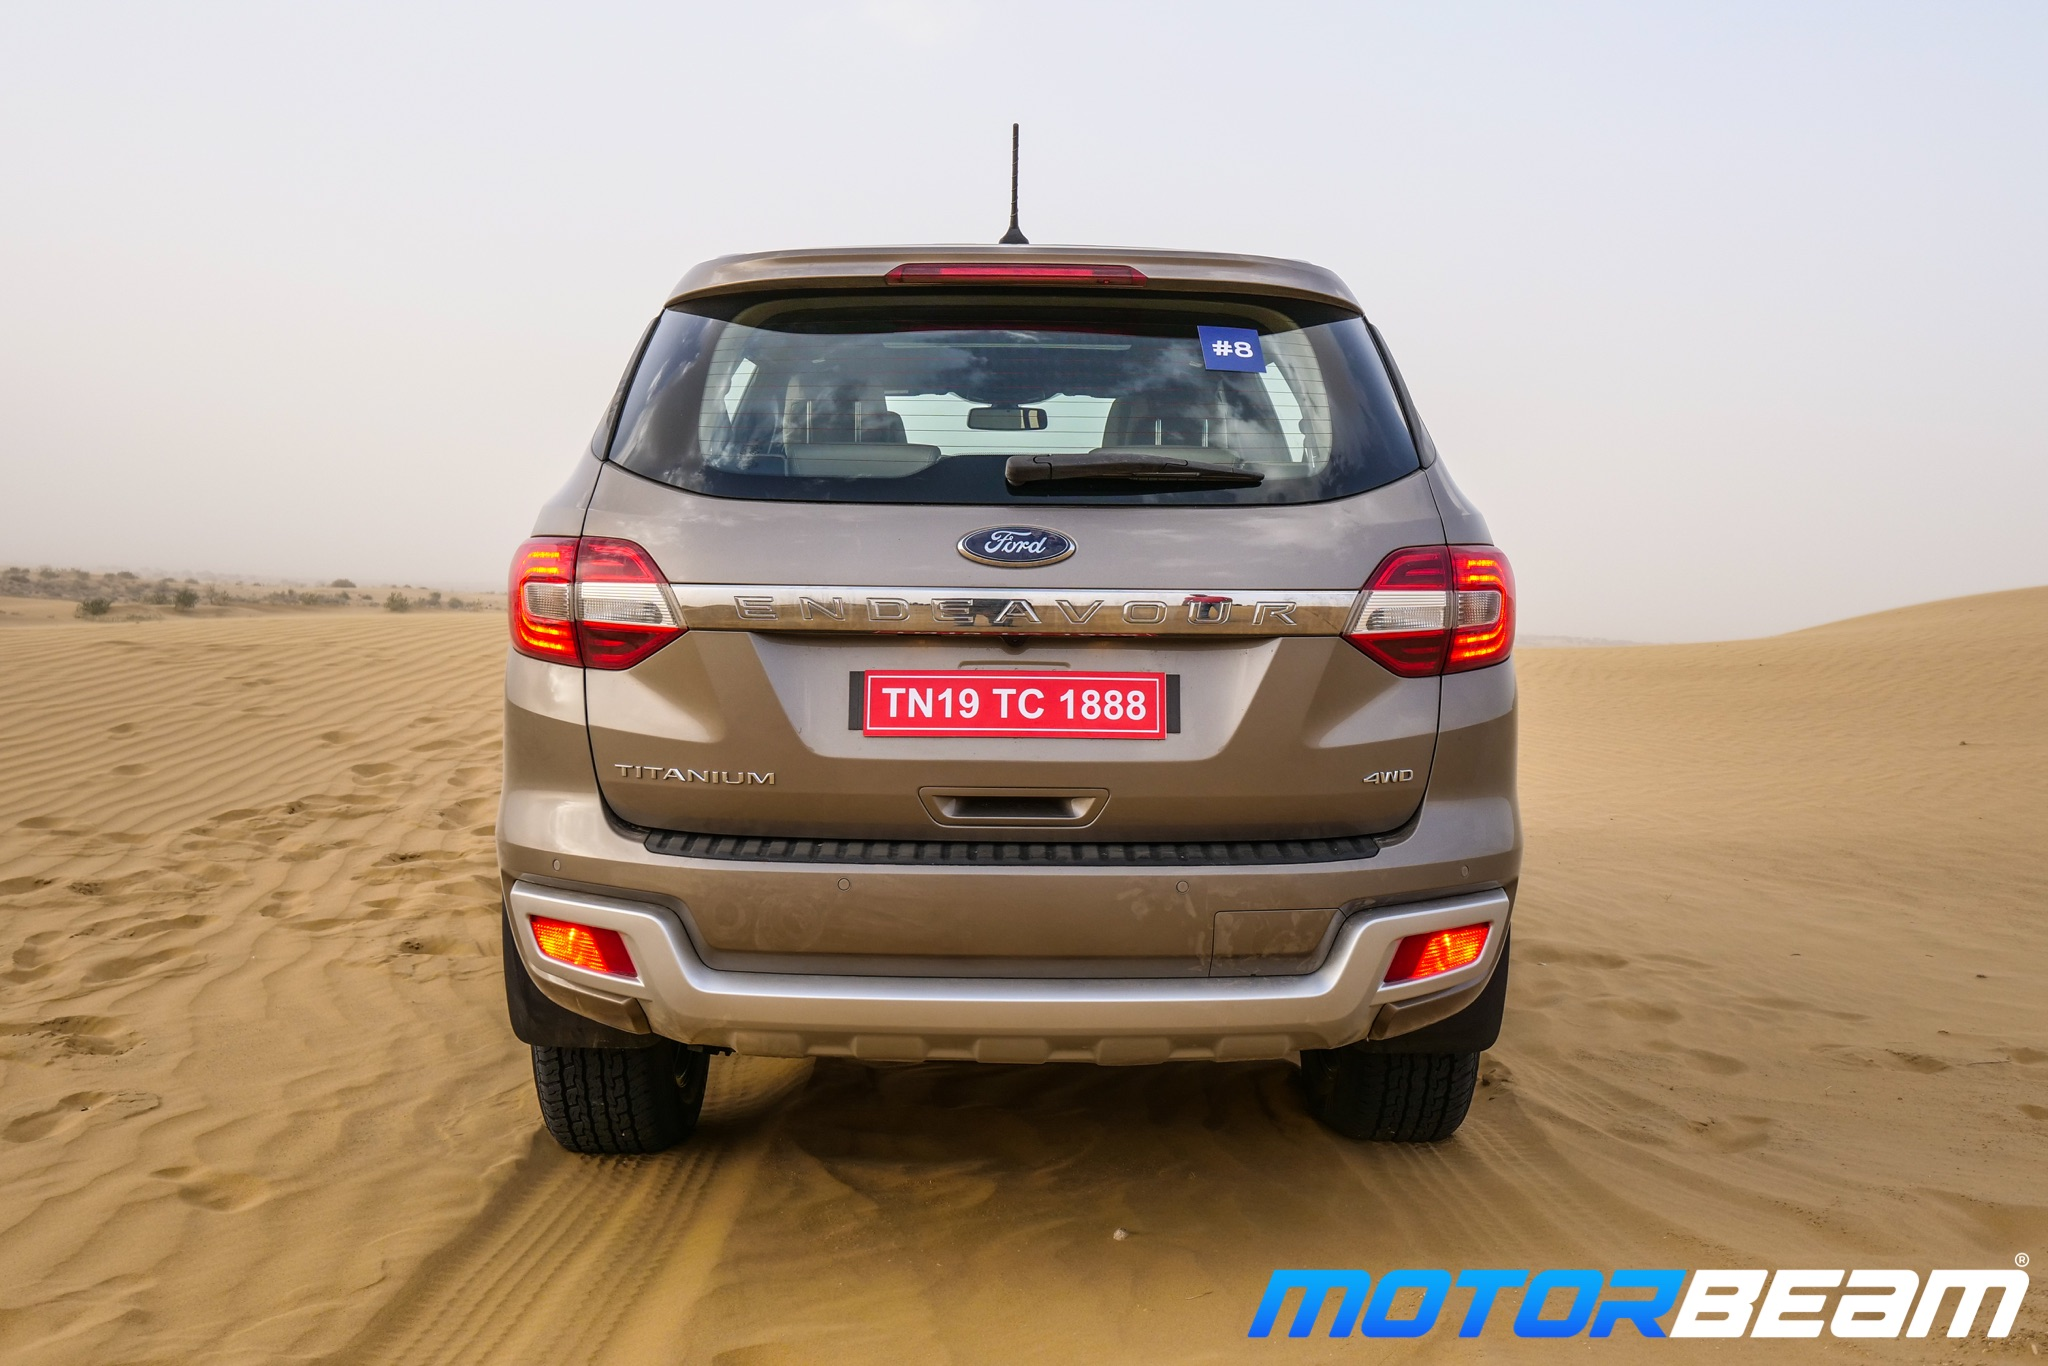 2019 Ford Endeavour Price